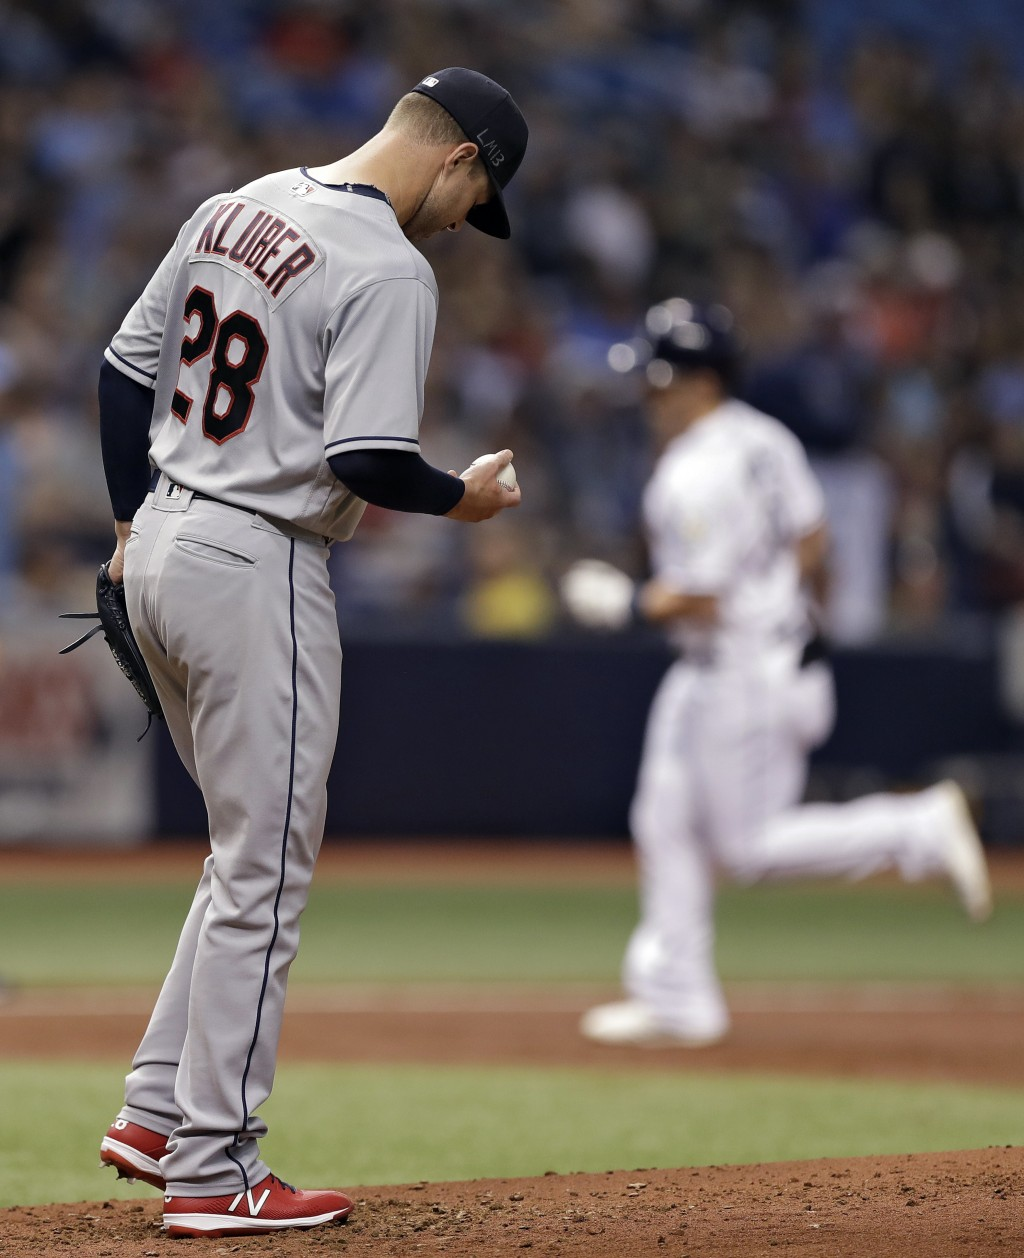 Cleveland Indians pitcher Corey Kluber reacts as Tampa Bay Rays' Jake Bauers, right, runs around the bases after Bauers hit a two-run home run during